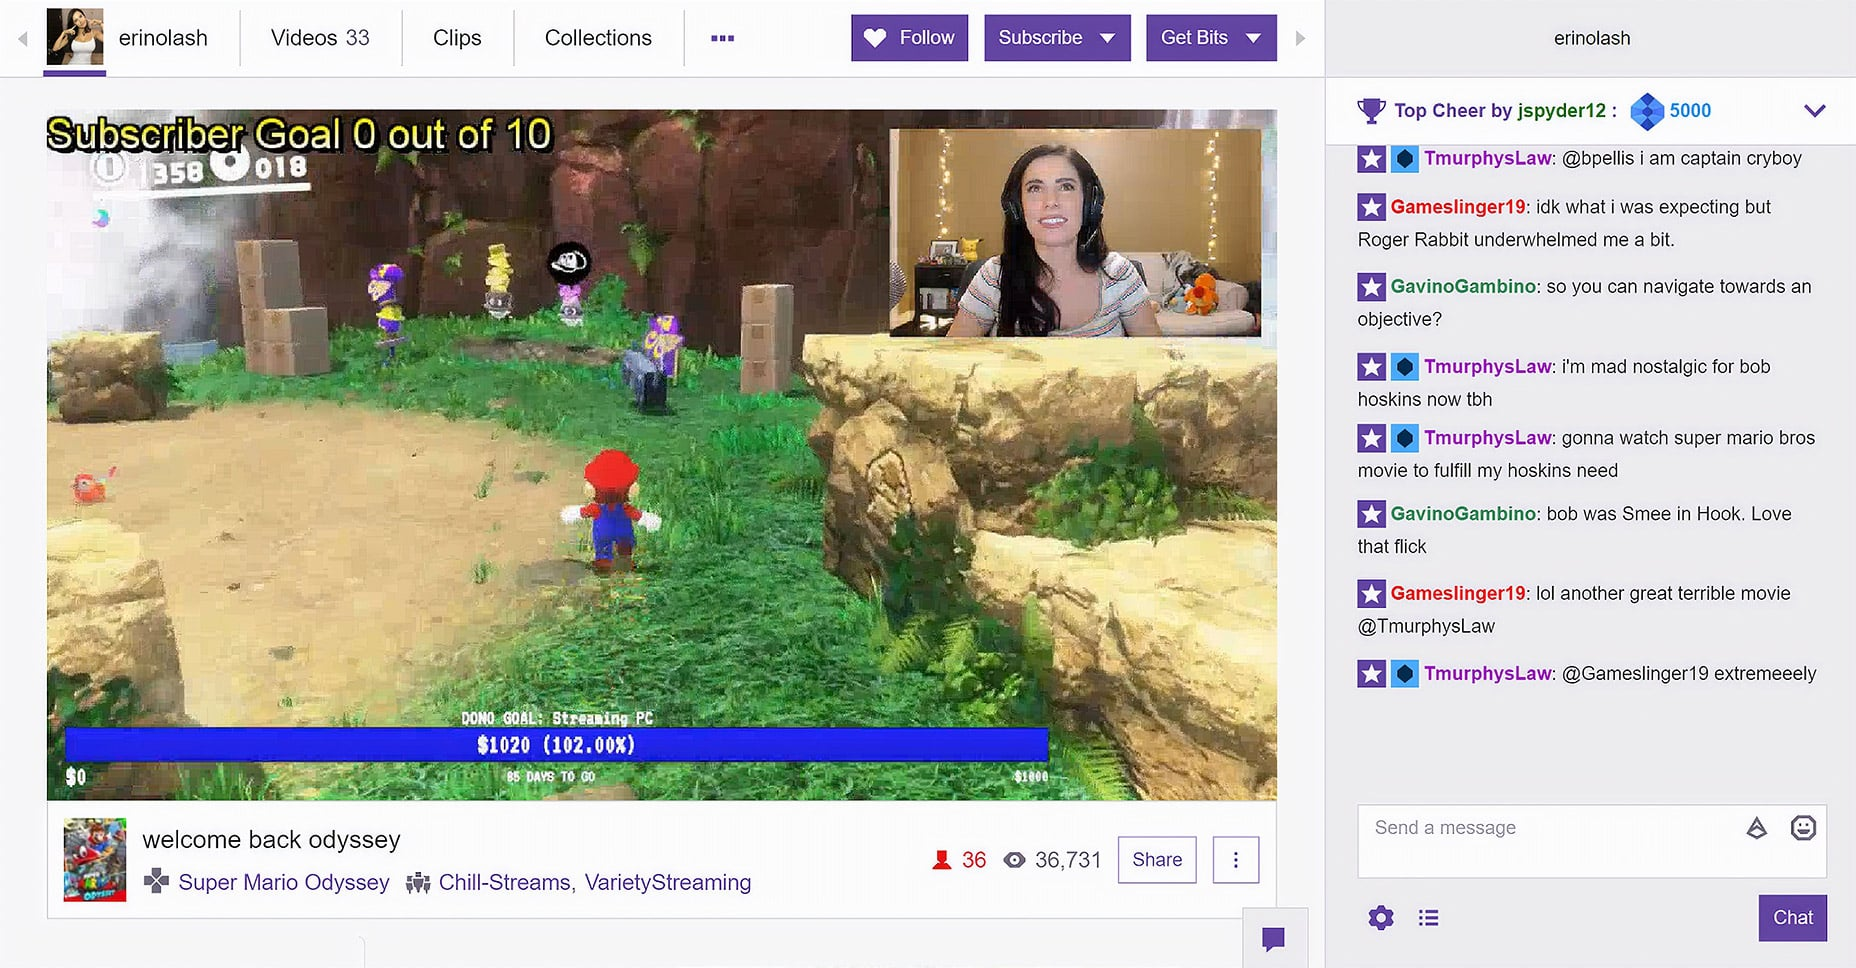 Visit other Twitch streams